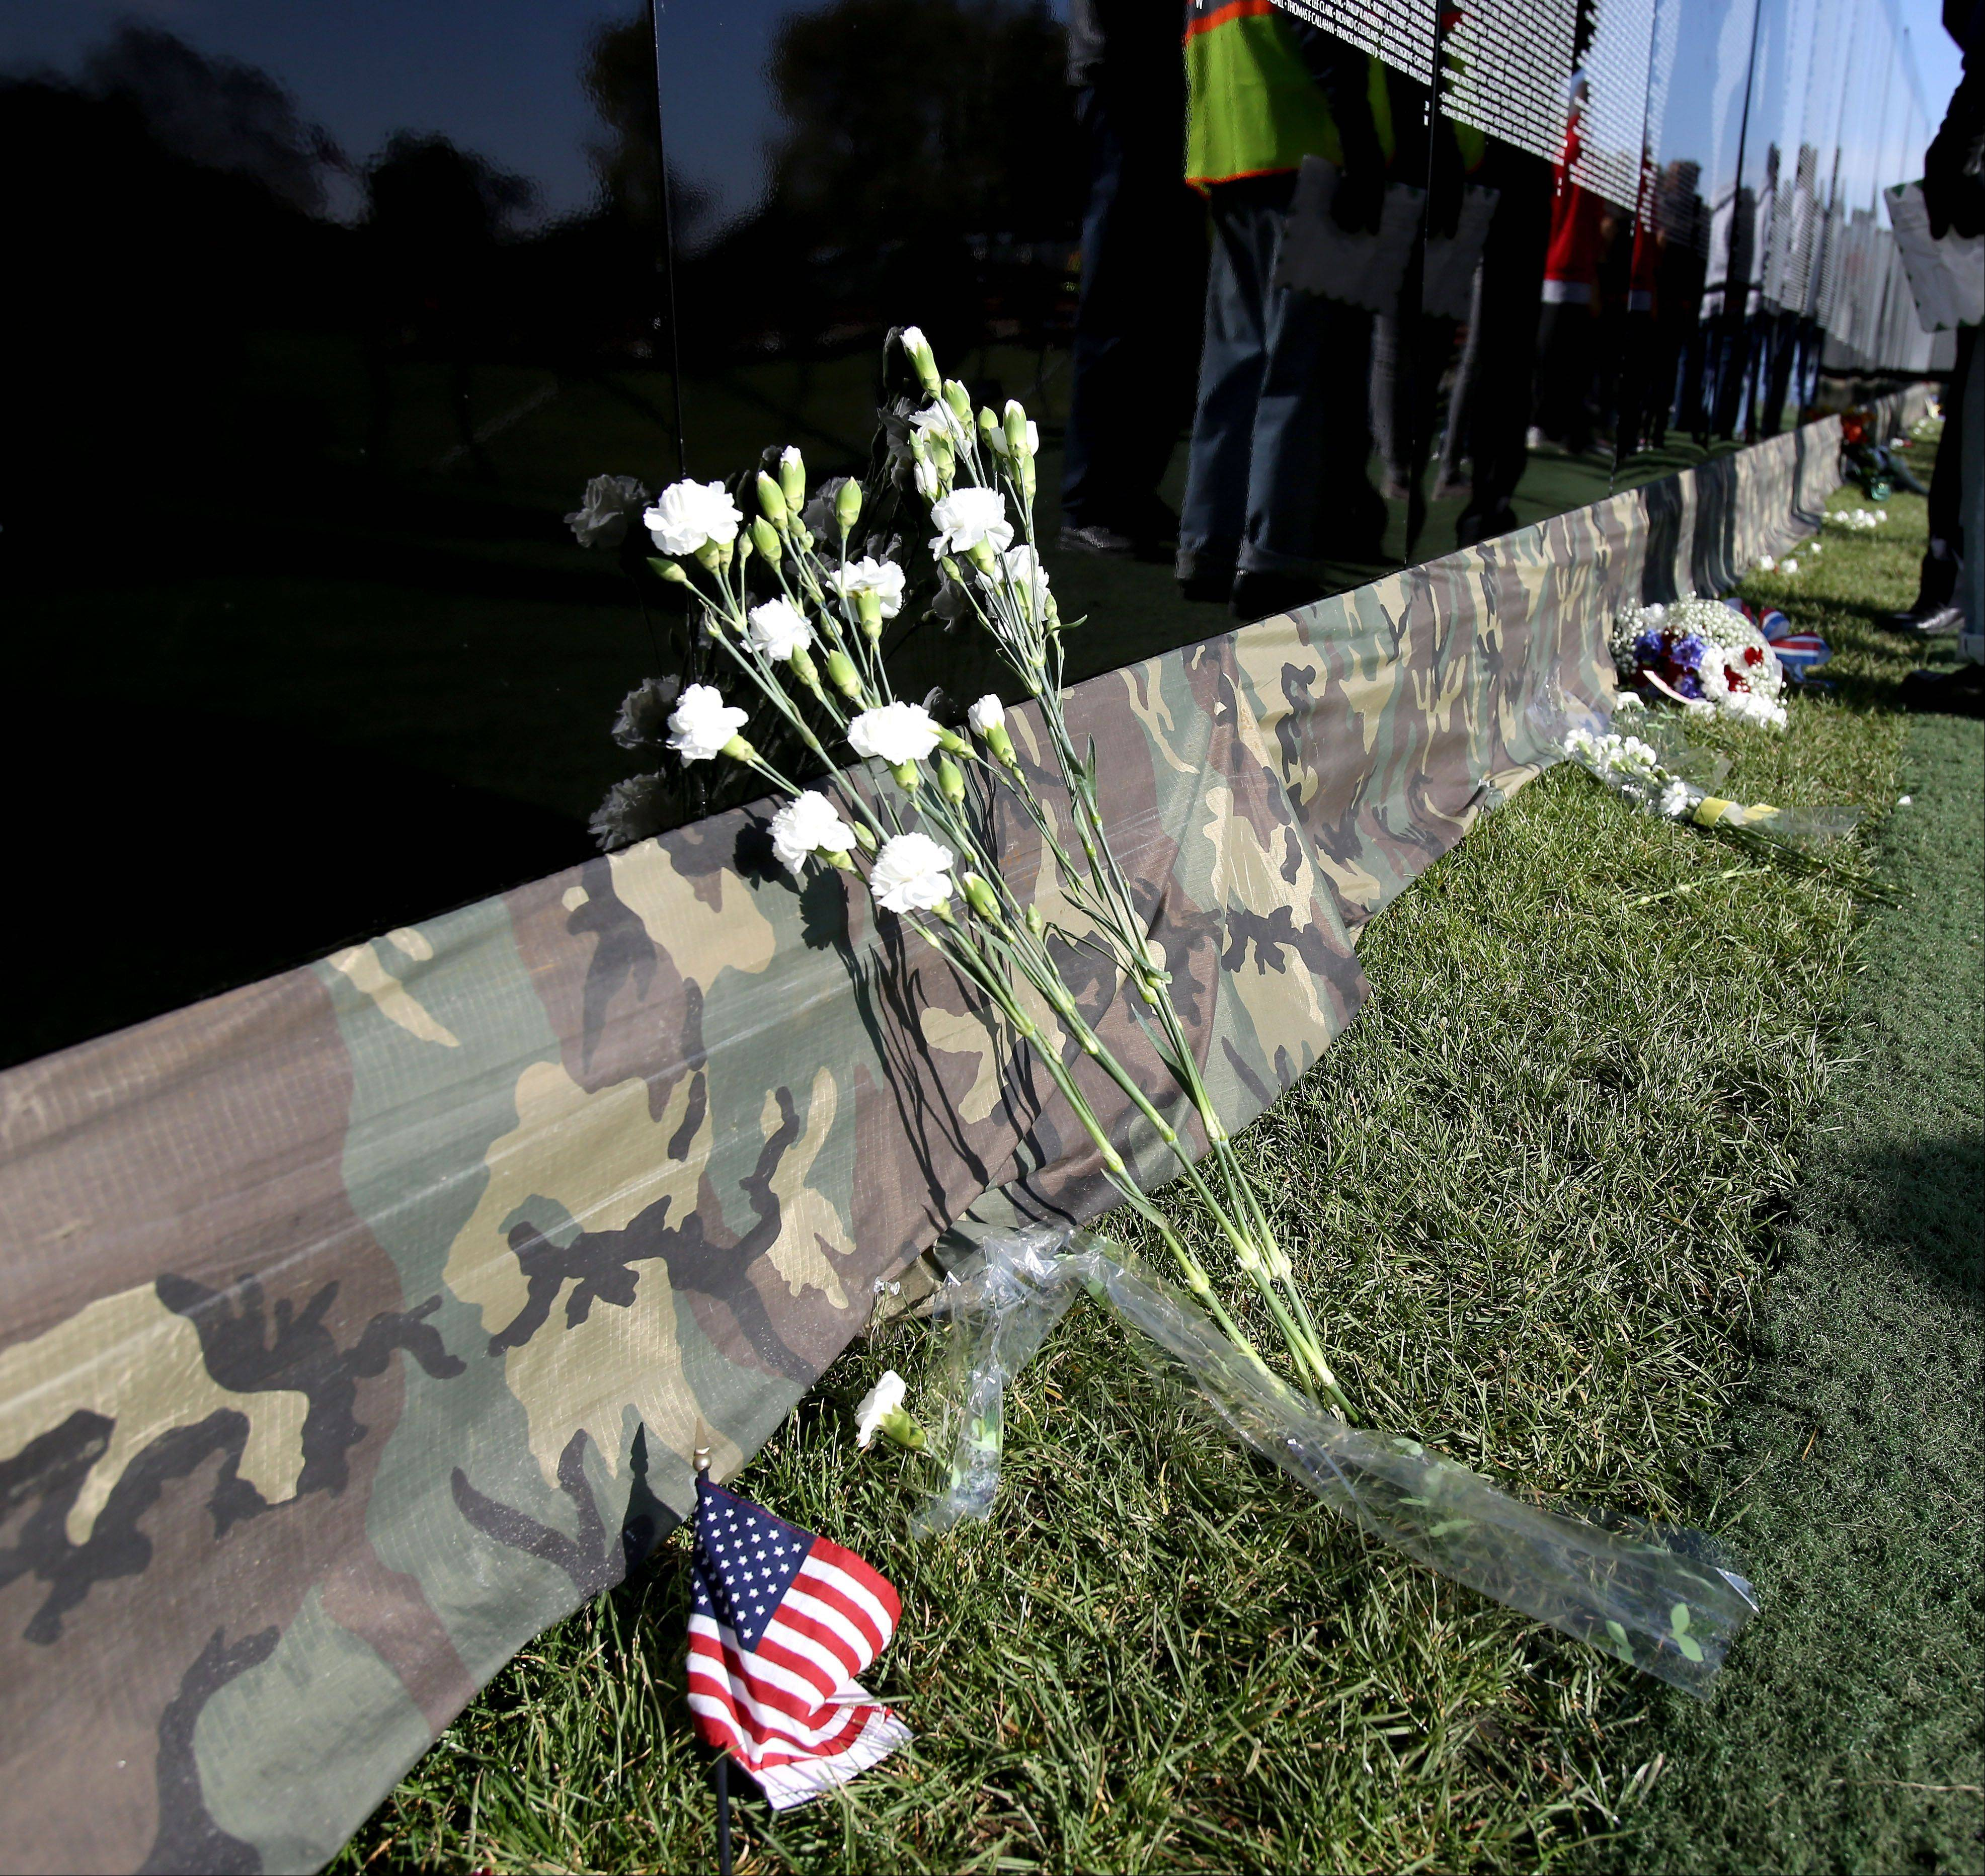 Flowers, photos and other memorials left at the base of the wall were commonplace by Friday morning.